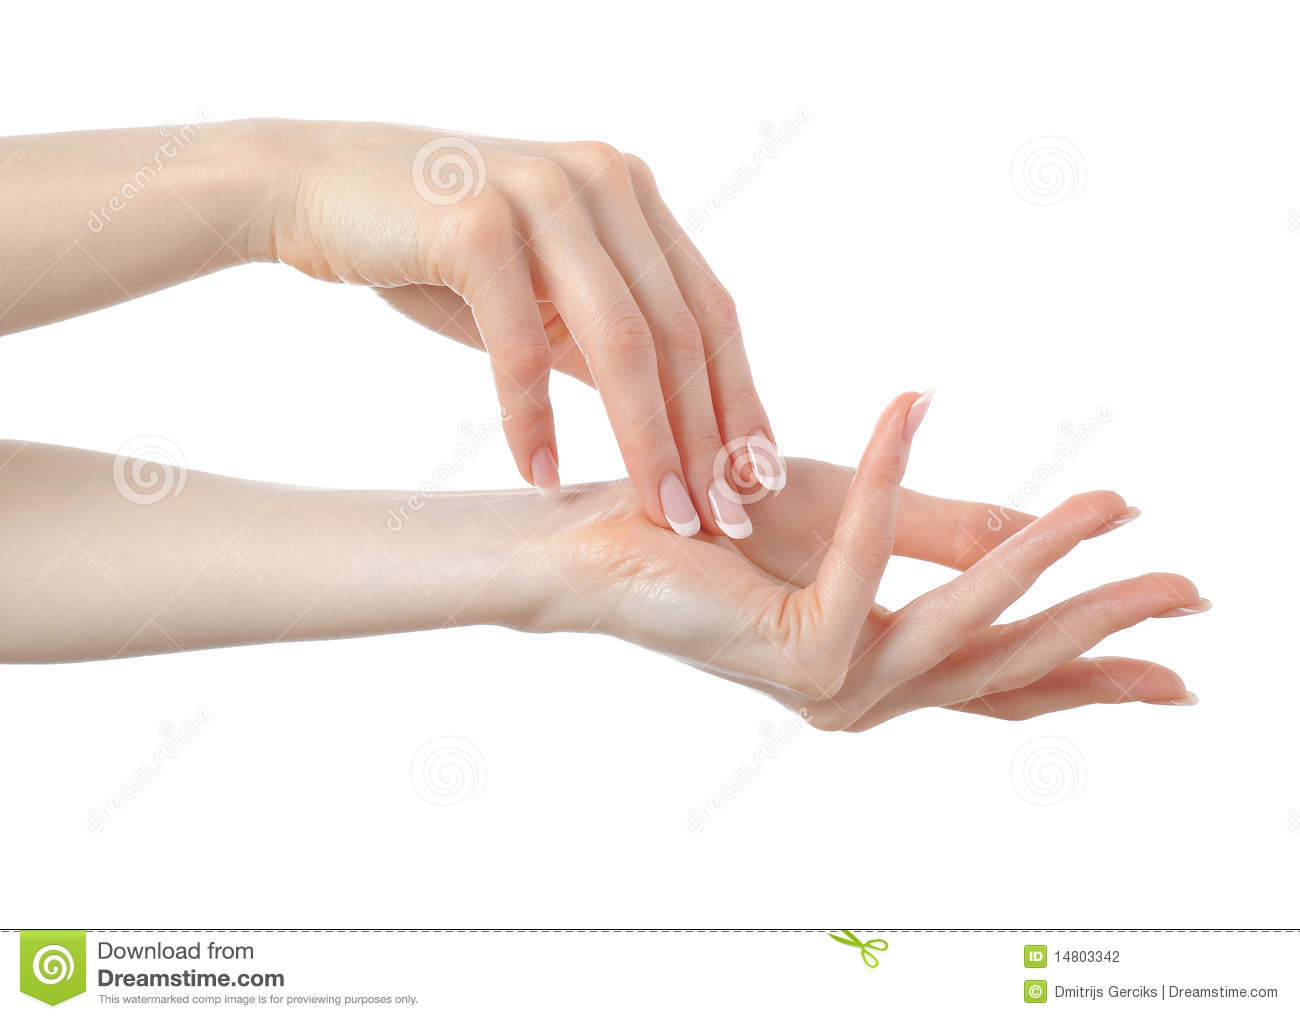 how to say hand in french